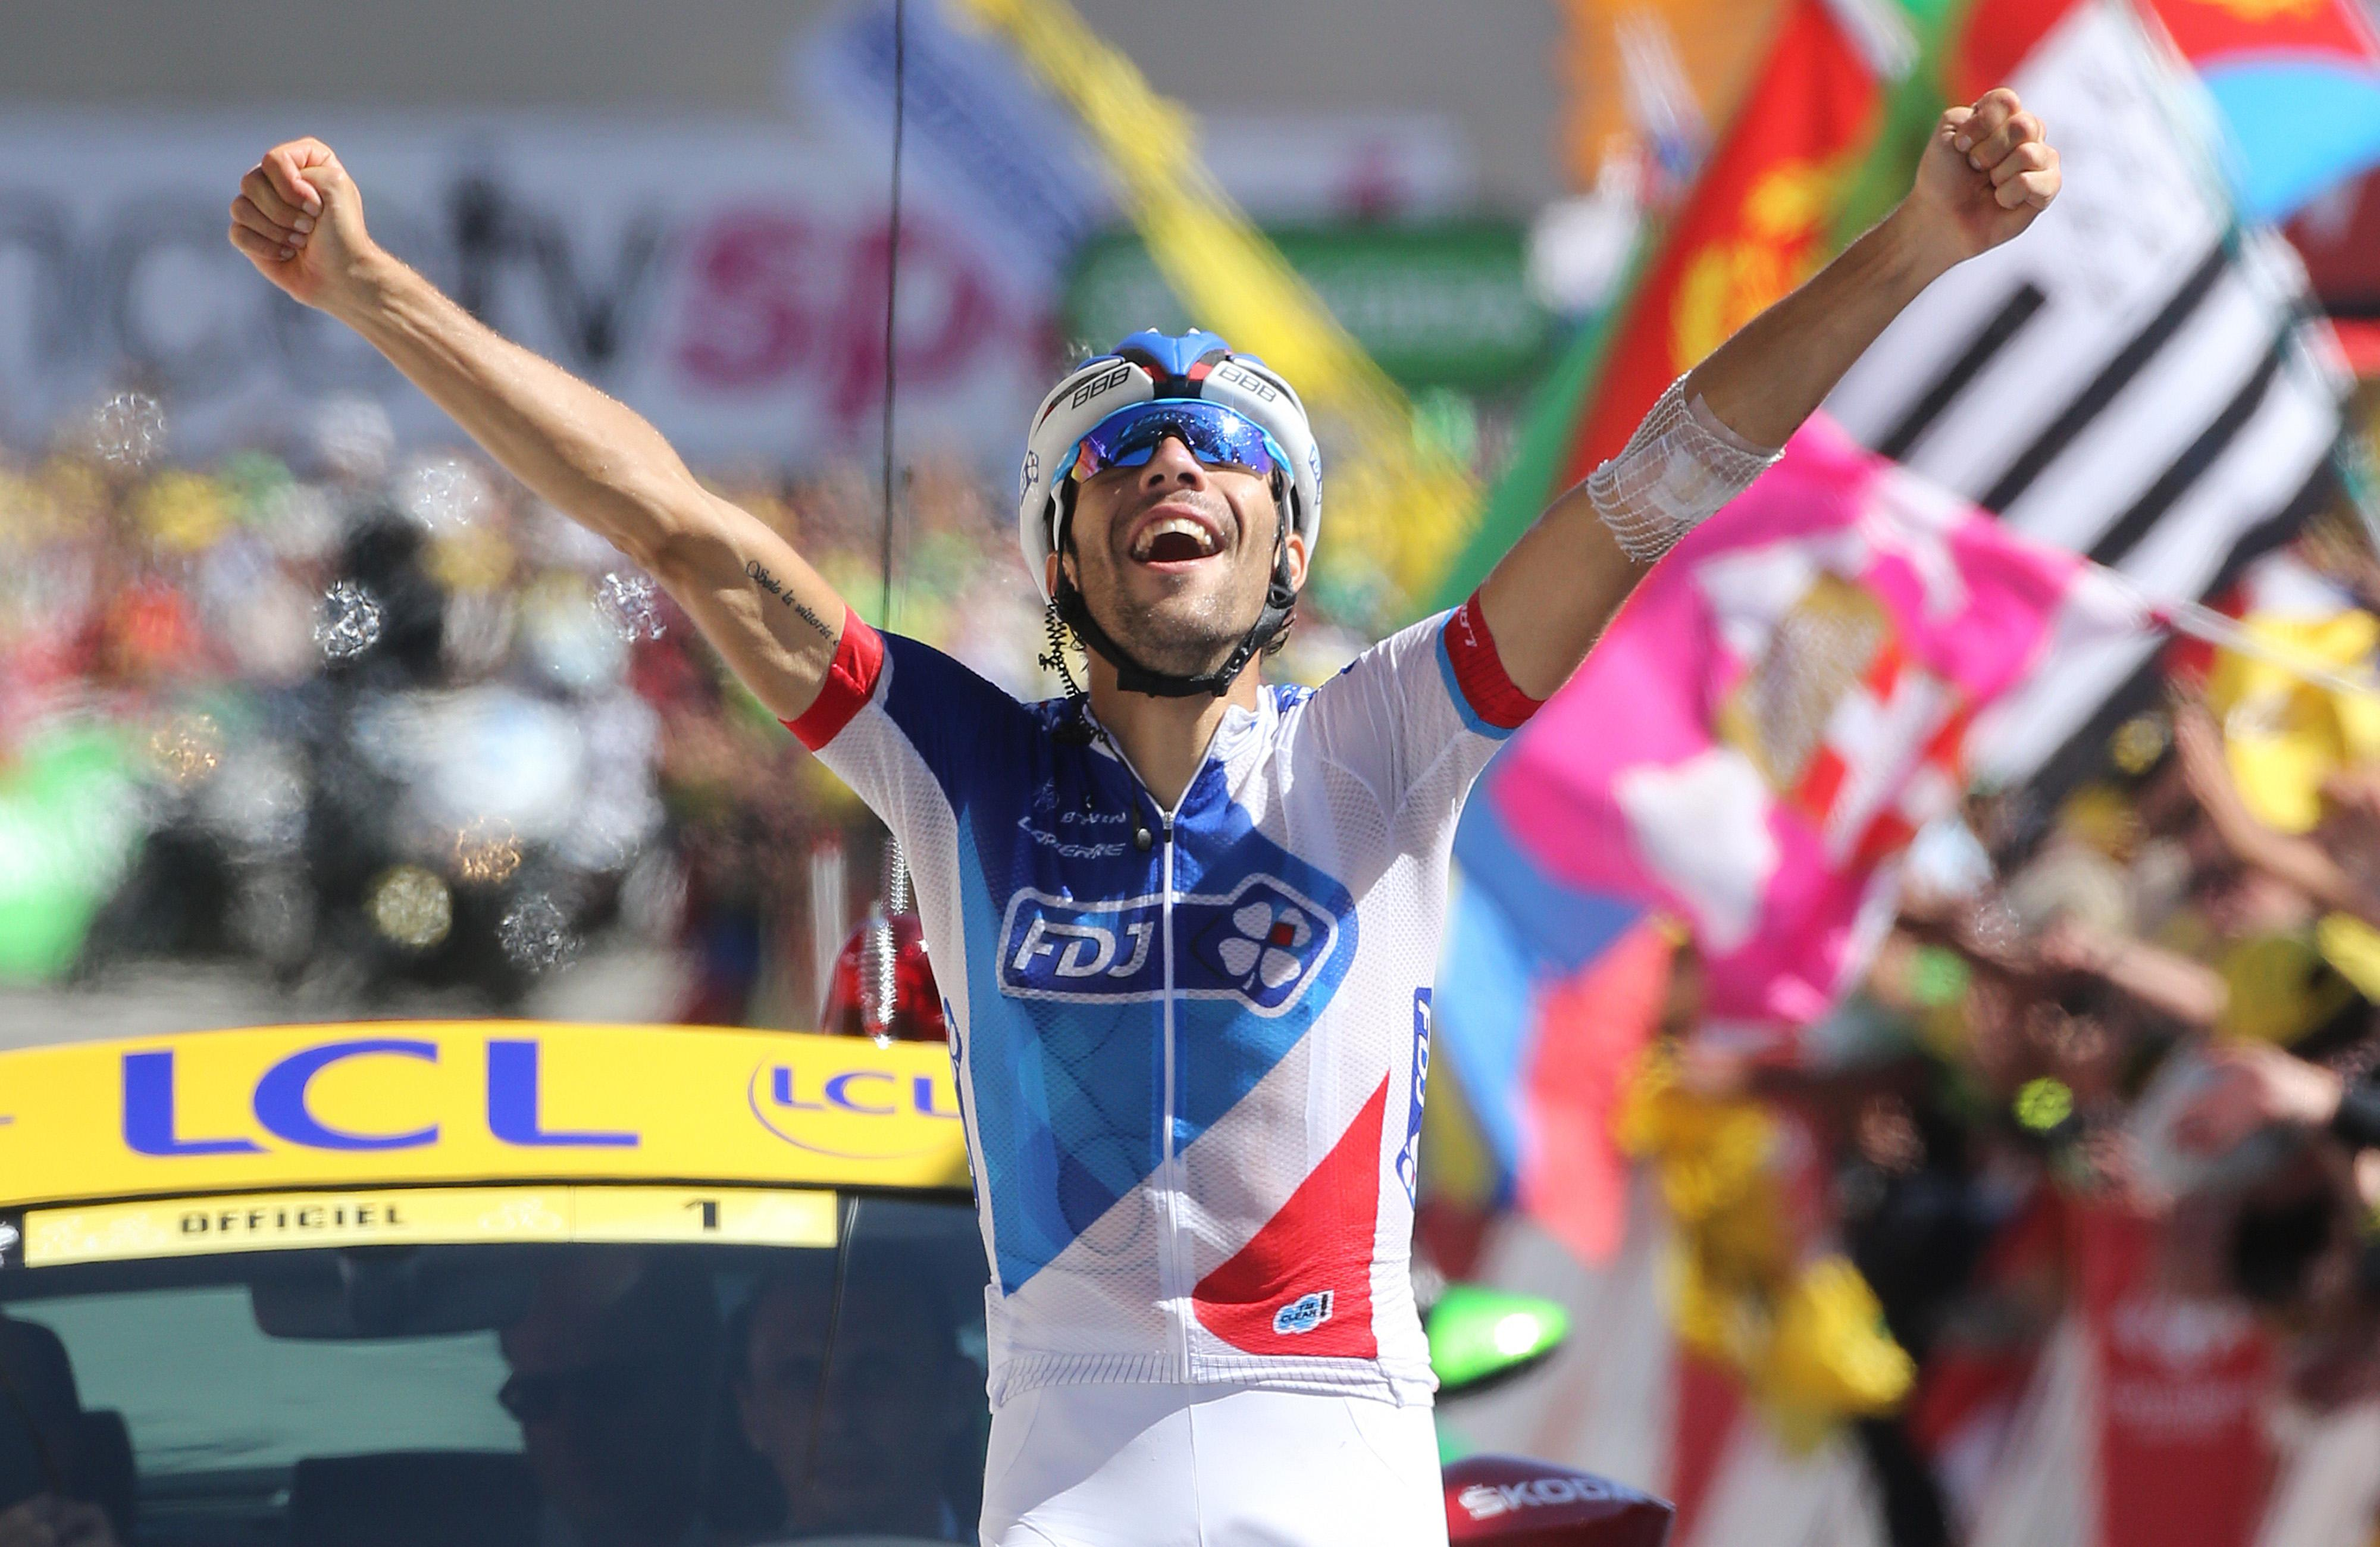 Thibaut Pinot's 2015 victory made it three in a row for French riders